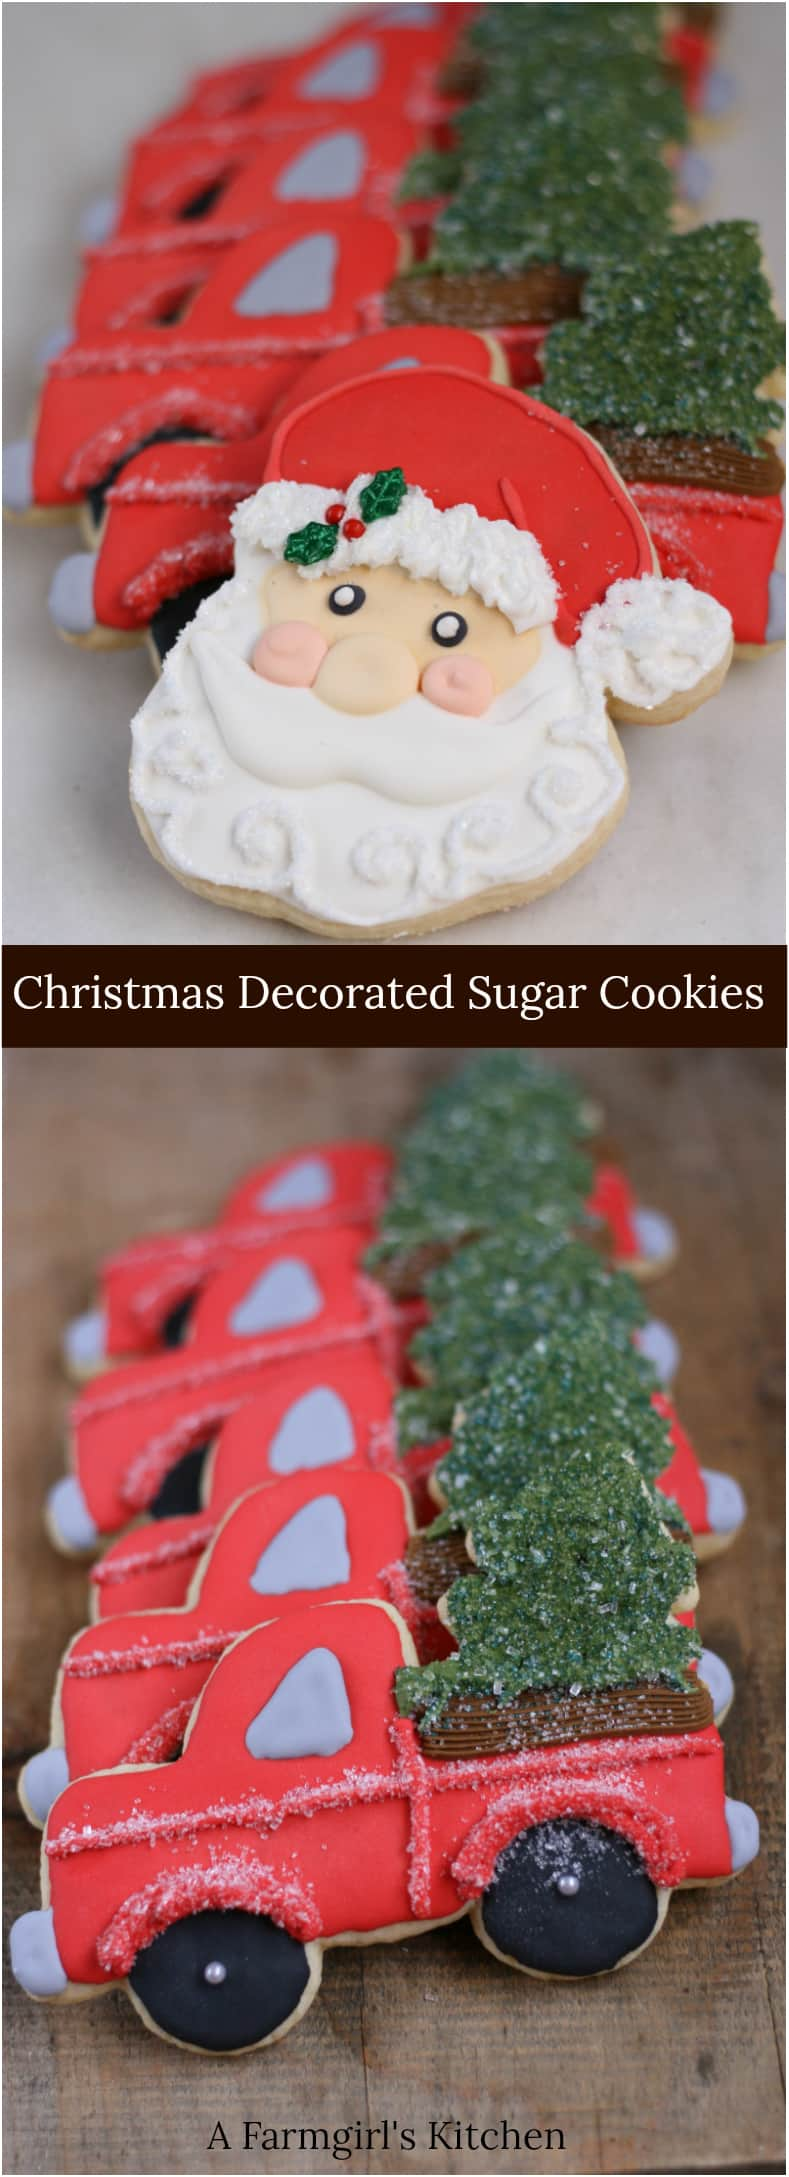 Learn how to make these adorable Christmas Decorated Sugar Cookies. #recipe #Christmas #Afarmgirlskitchen